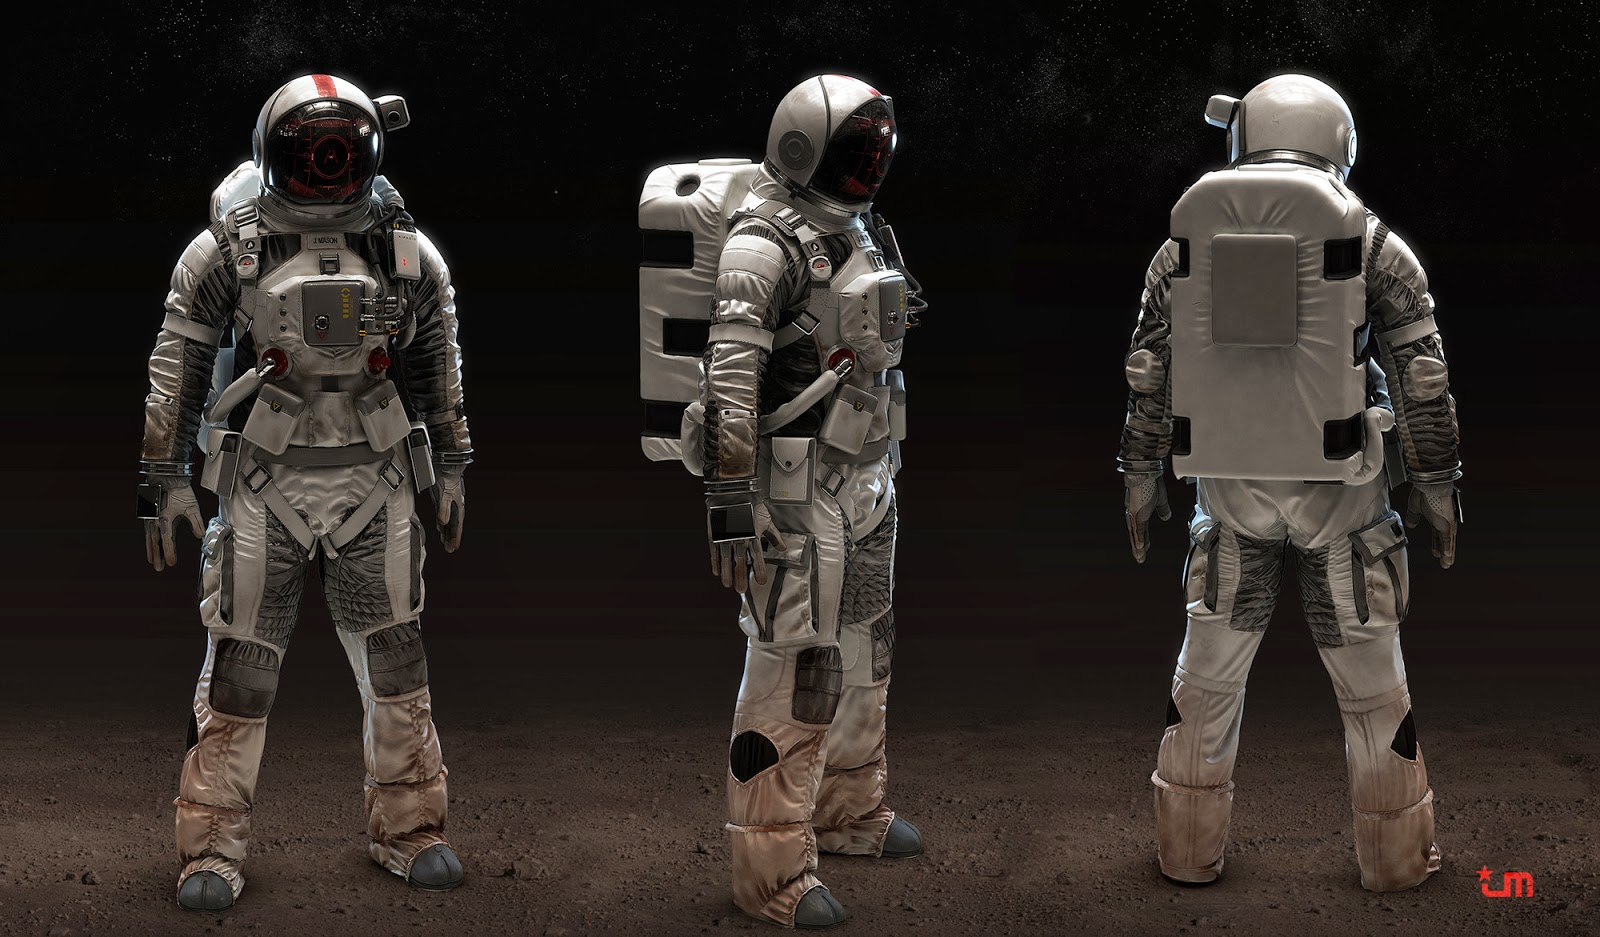 astronaut space suit - photo #40